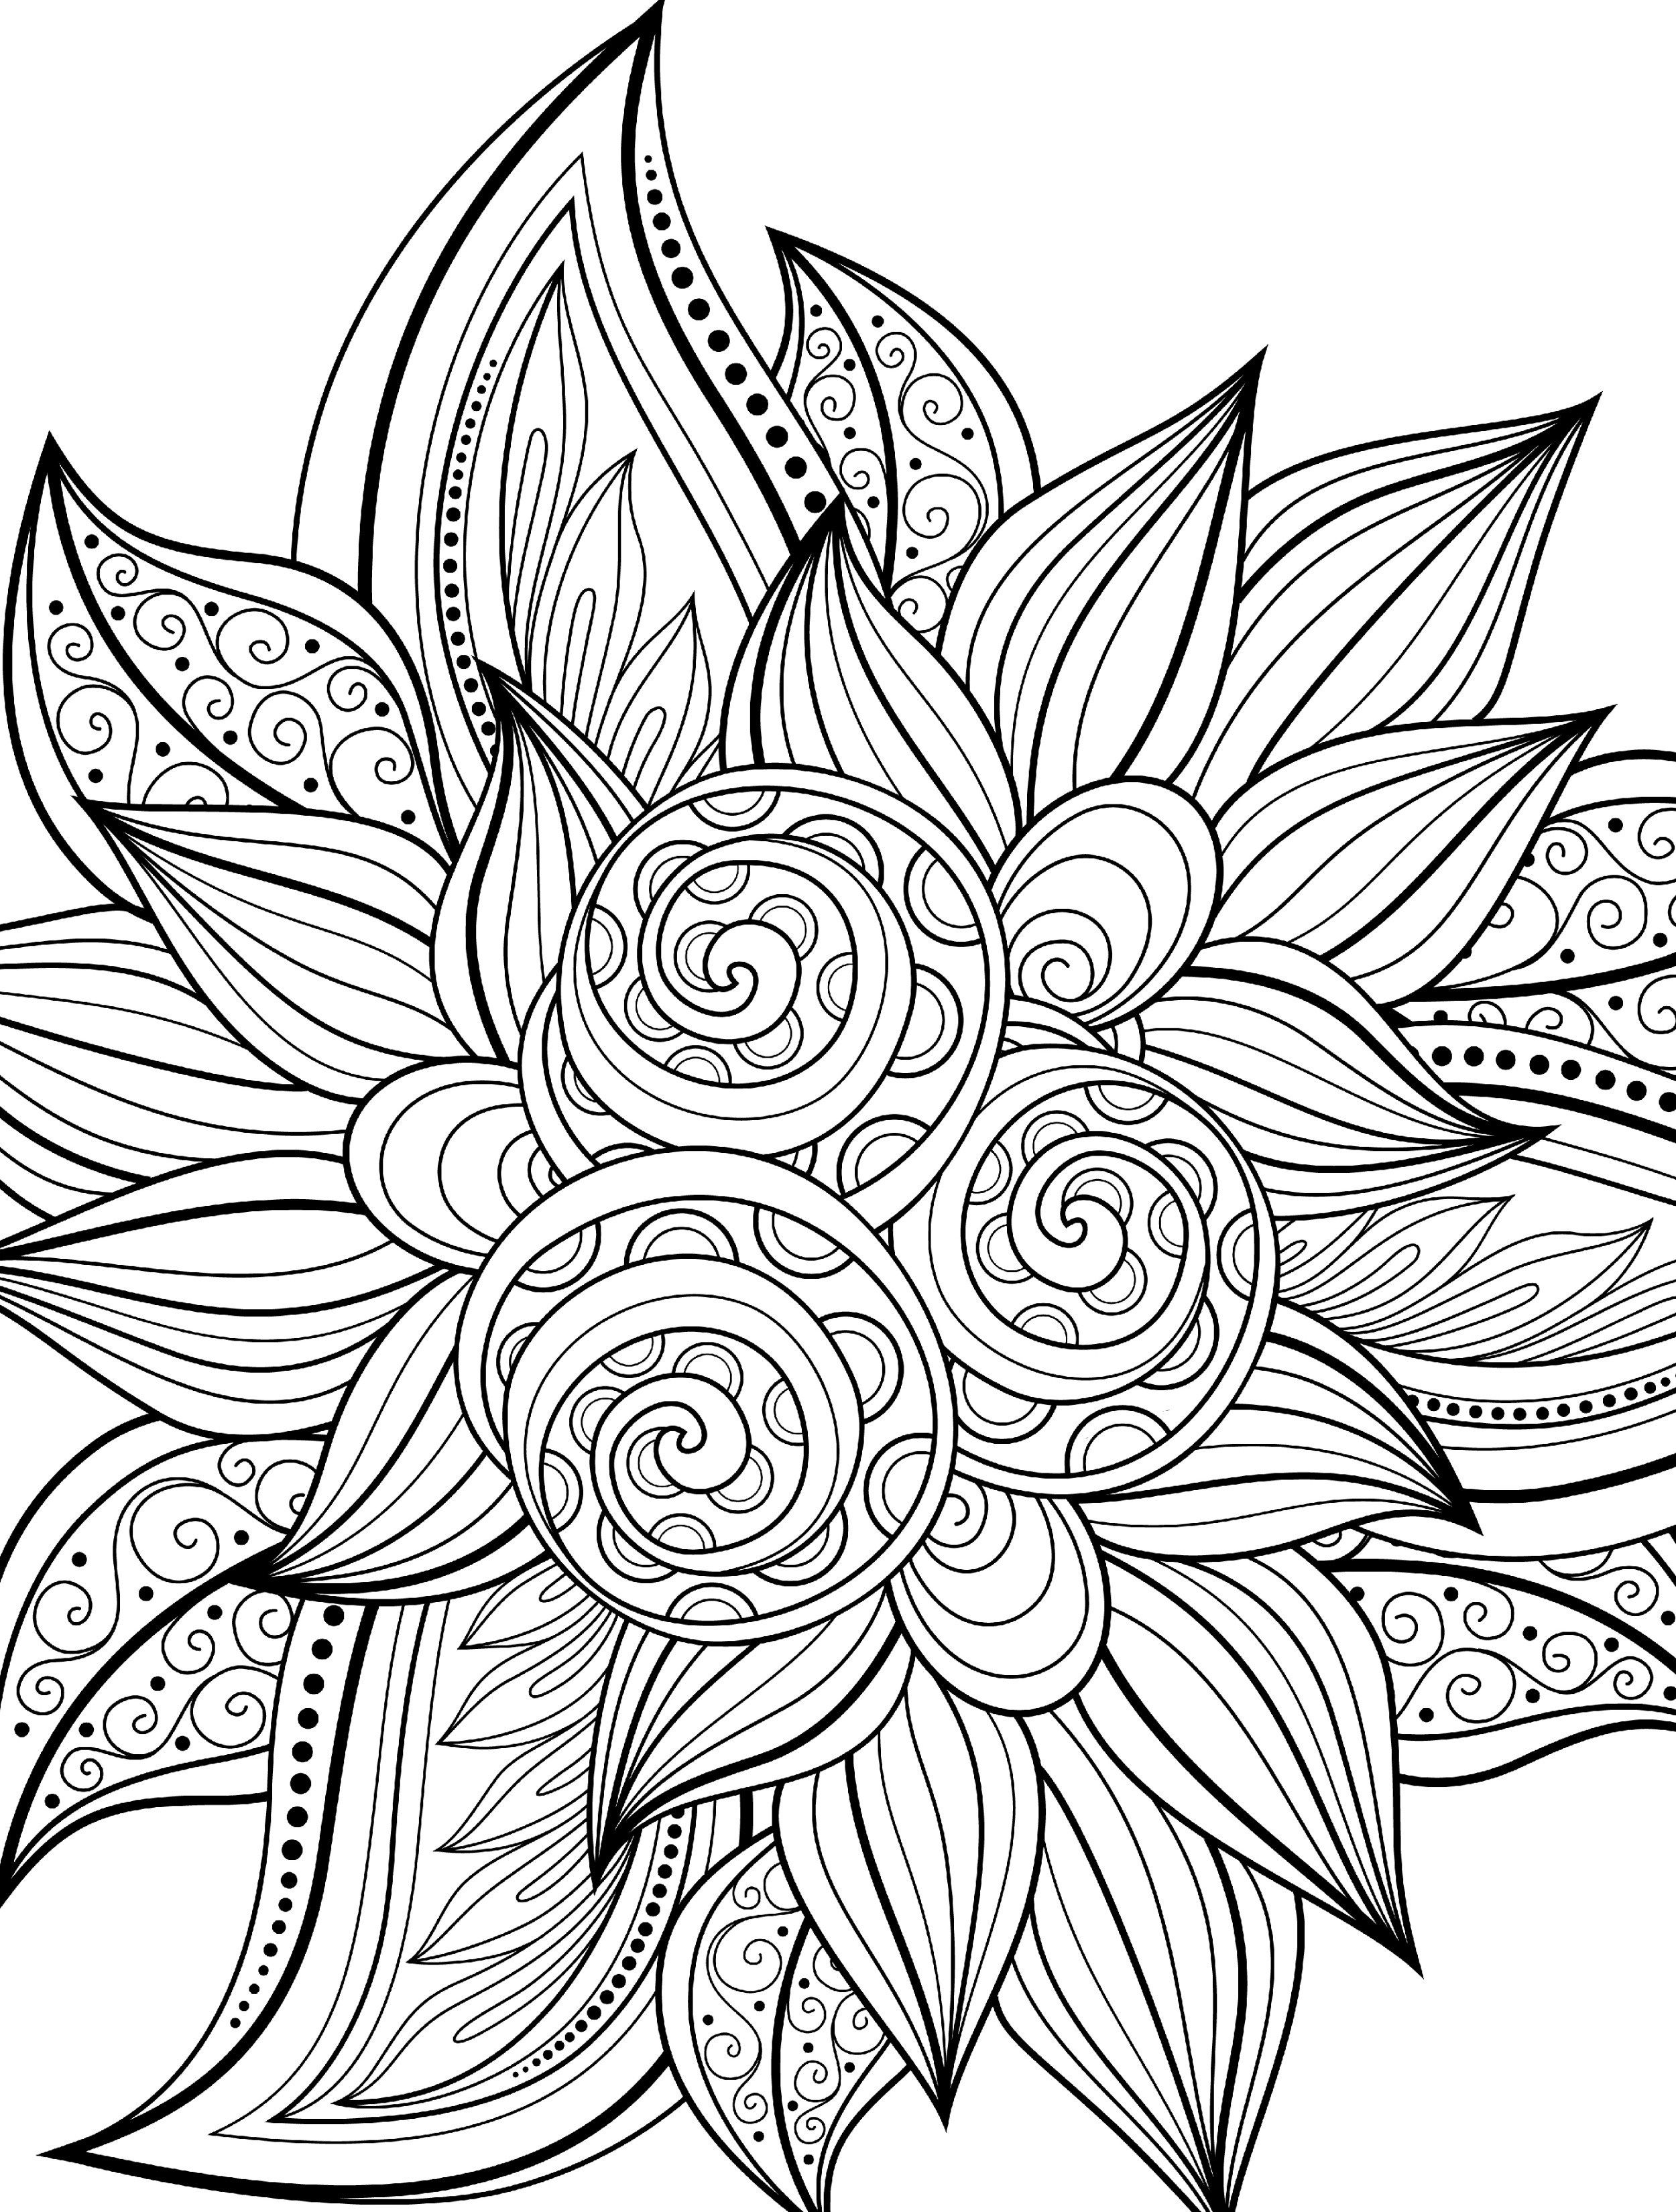 Free coloring pages com printable - Free Giveaways With This Page You Re Sure To Go Nuts Over This Squirrel Coloring Page Perfect For Anyone Looking For Some Free Effective Relaxat